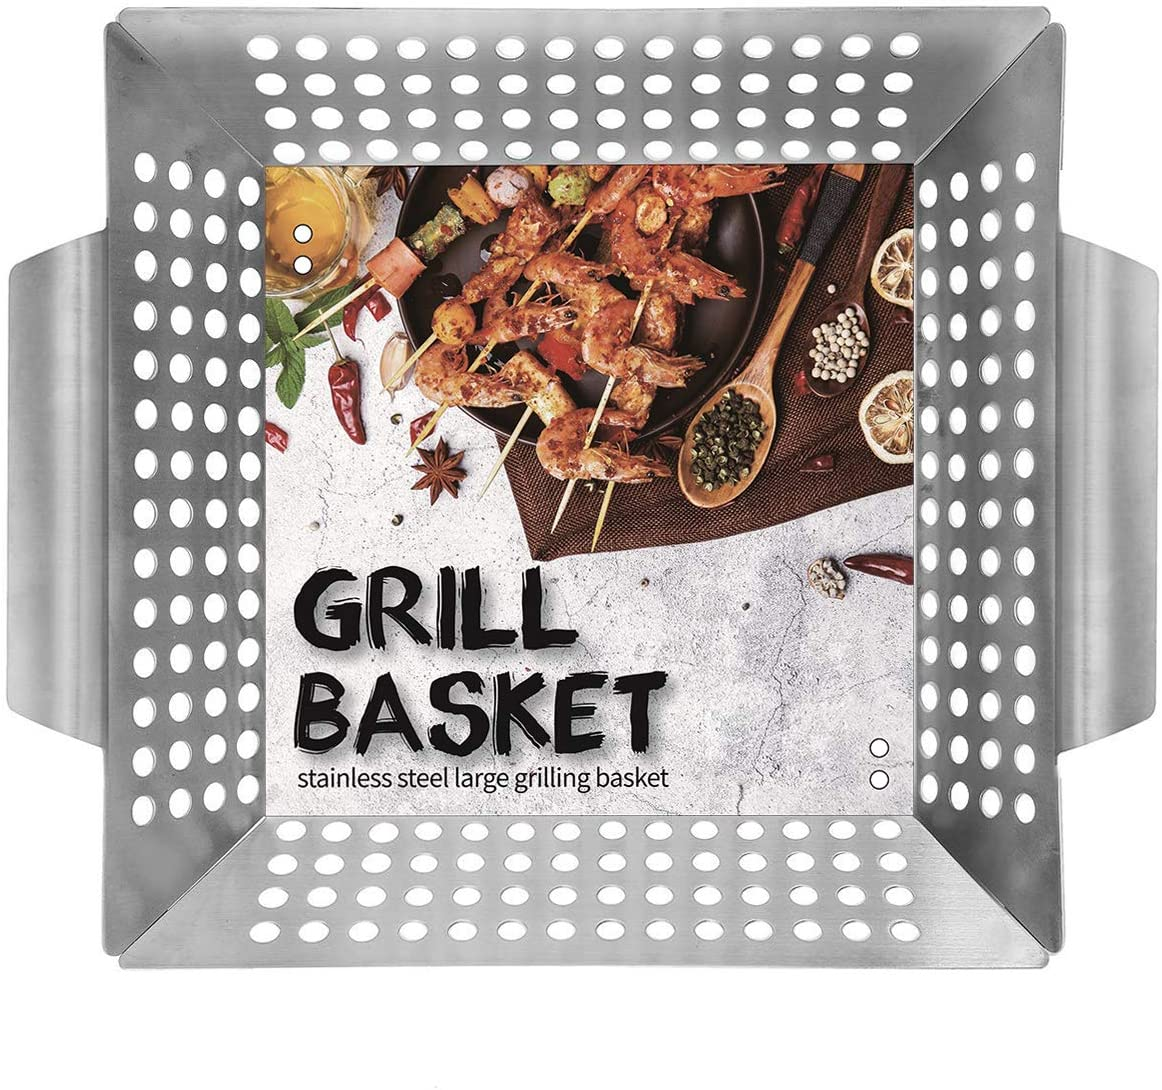 """Ranphykx Vegetable Grill Basket - Safe/Clean Porcelain Enameled BBQ Grilling Basket (Large 12""""x12""""x3"""") for Veggies, Kabobs, Seafood, Meats - Stainless Steel"""